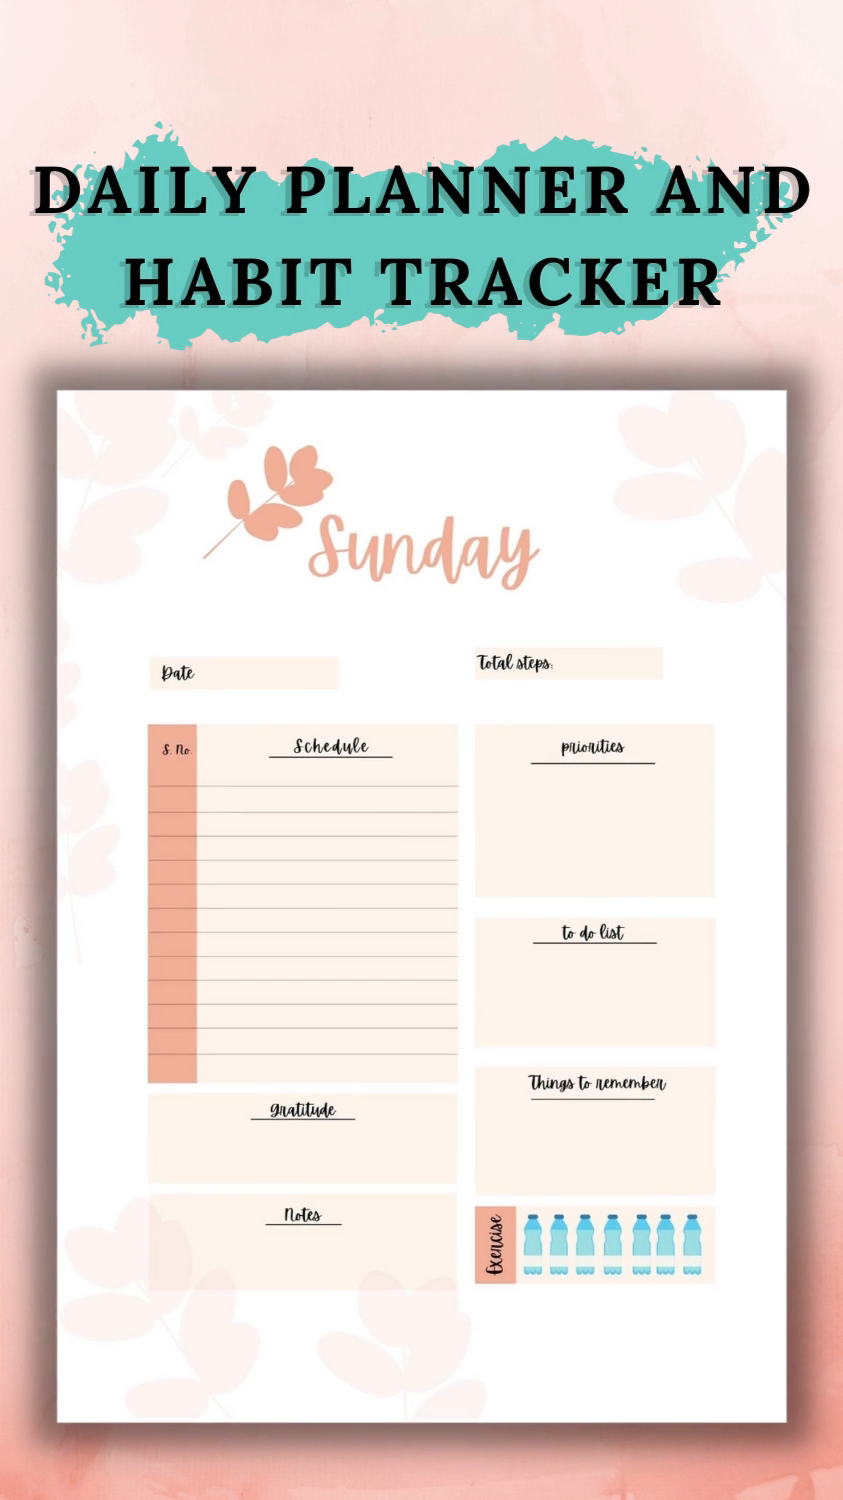 DAILY PLANNER 2021 PRINTABLE